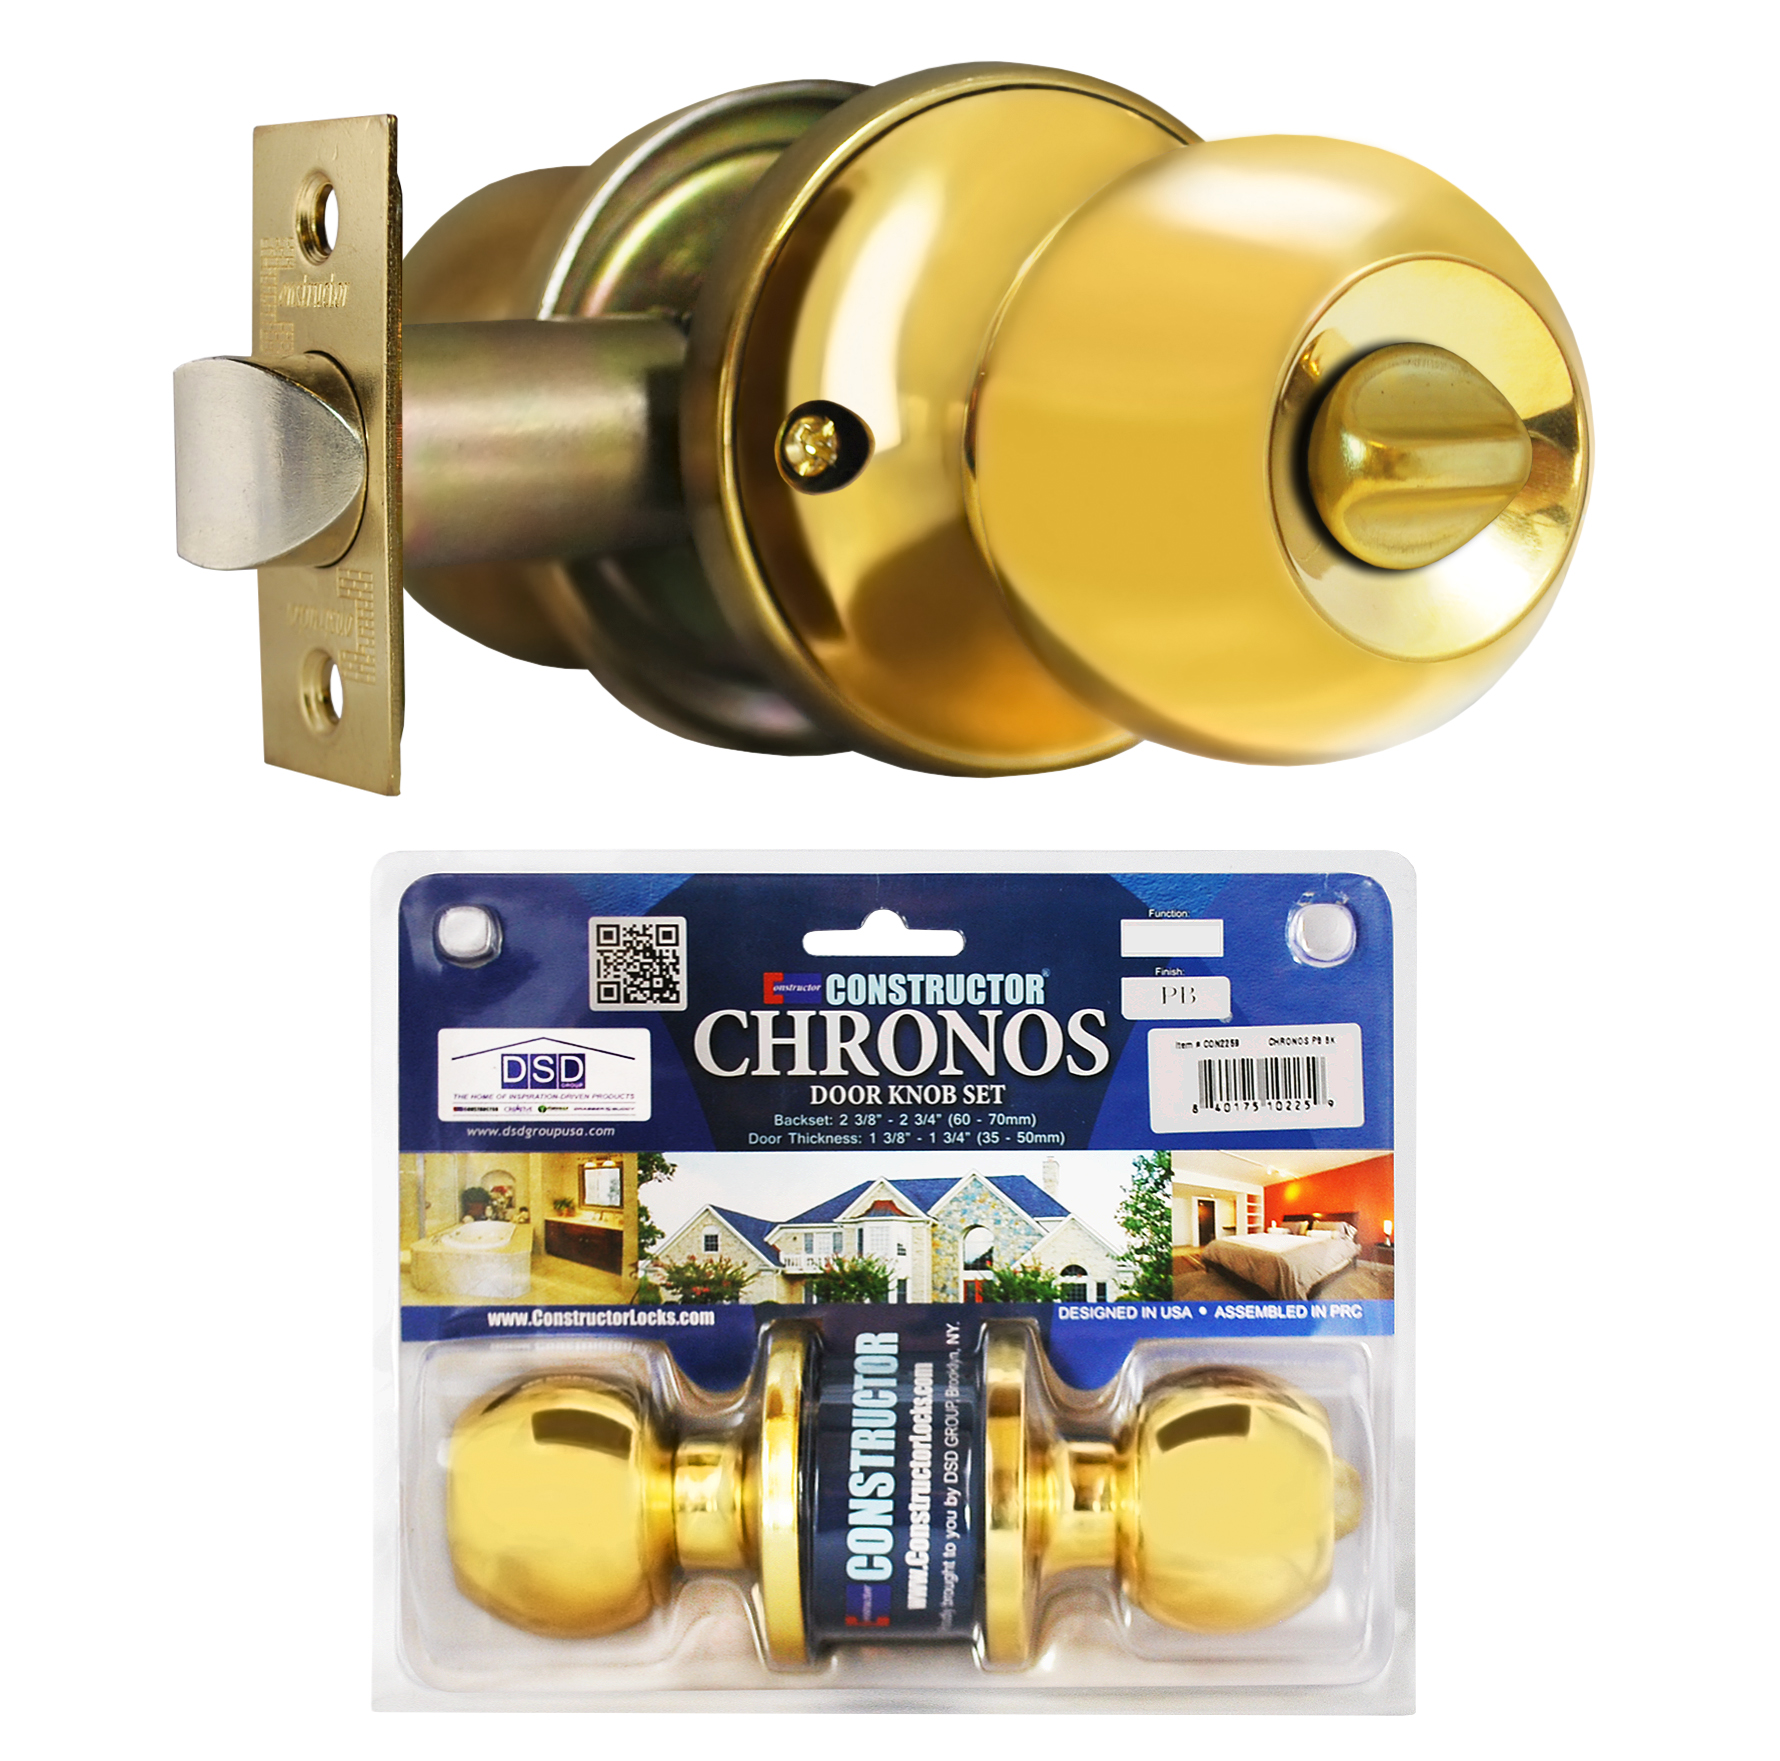 Constructor Chronos Privacy Door Knob Handle Lock Set for Bedroom and Bathroom Polished Brass Finish